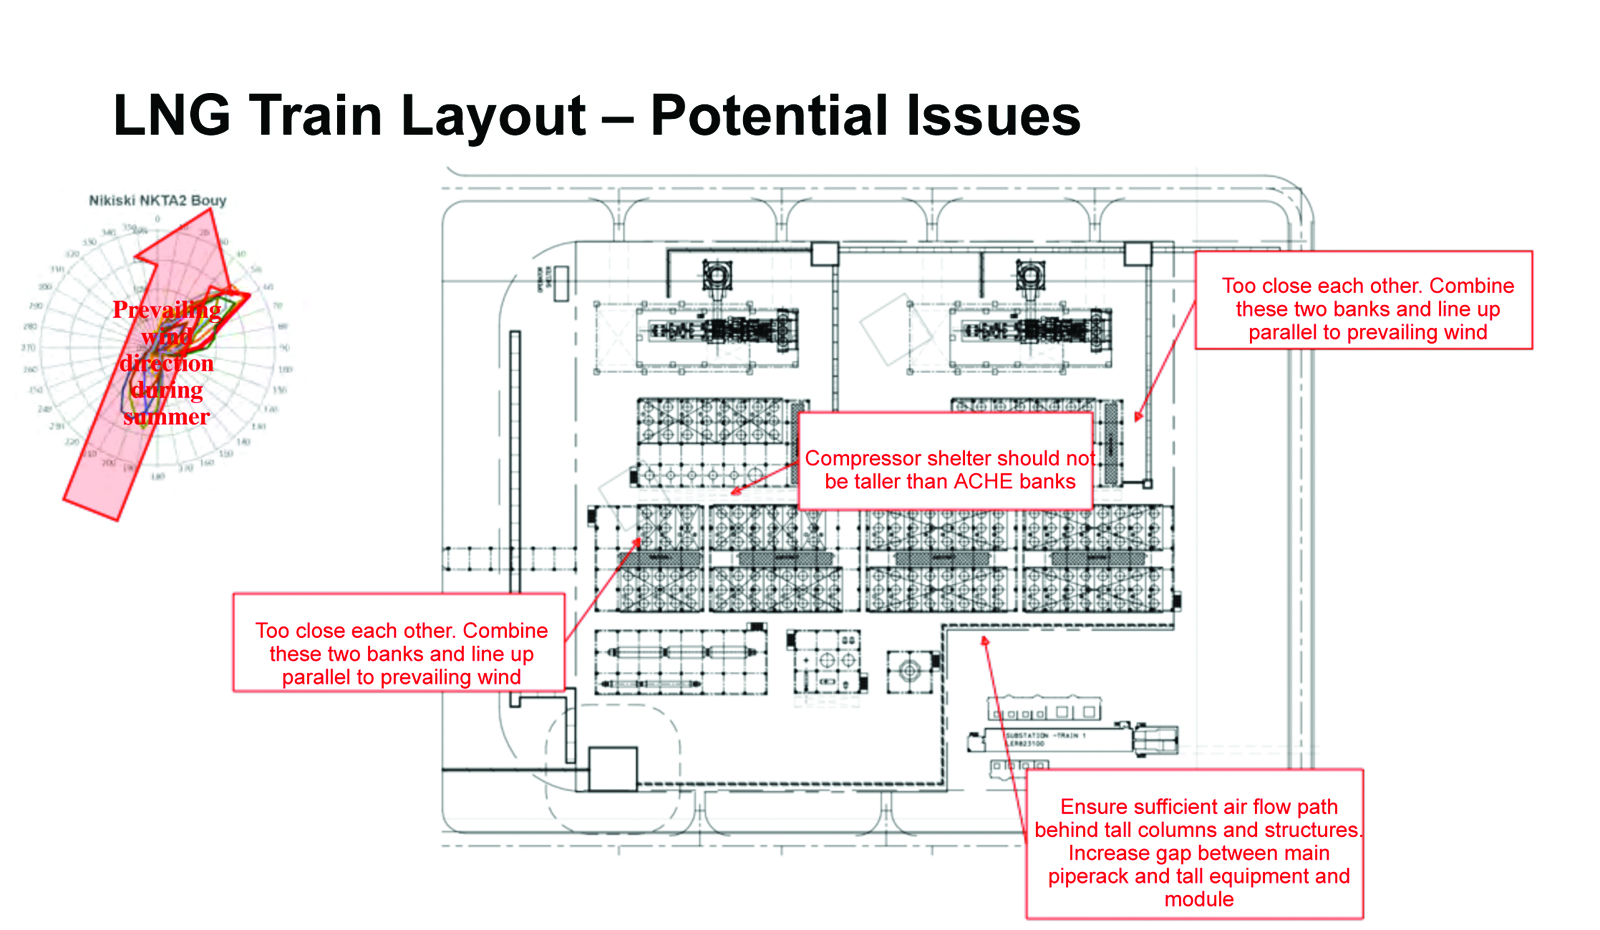 hight resolution of keiji akiyama a longtime veteran lng engineer from japan has identified what he believes are potential problems with the current plans for the layout of